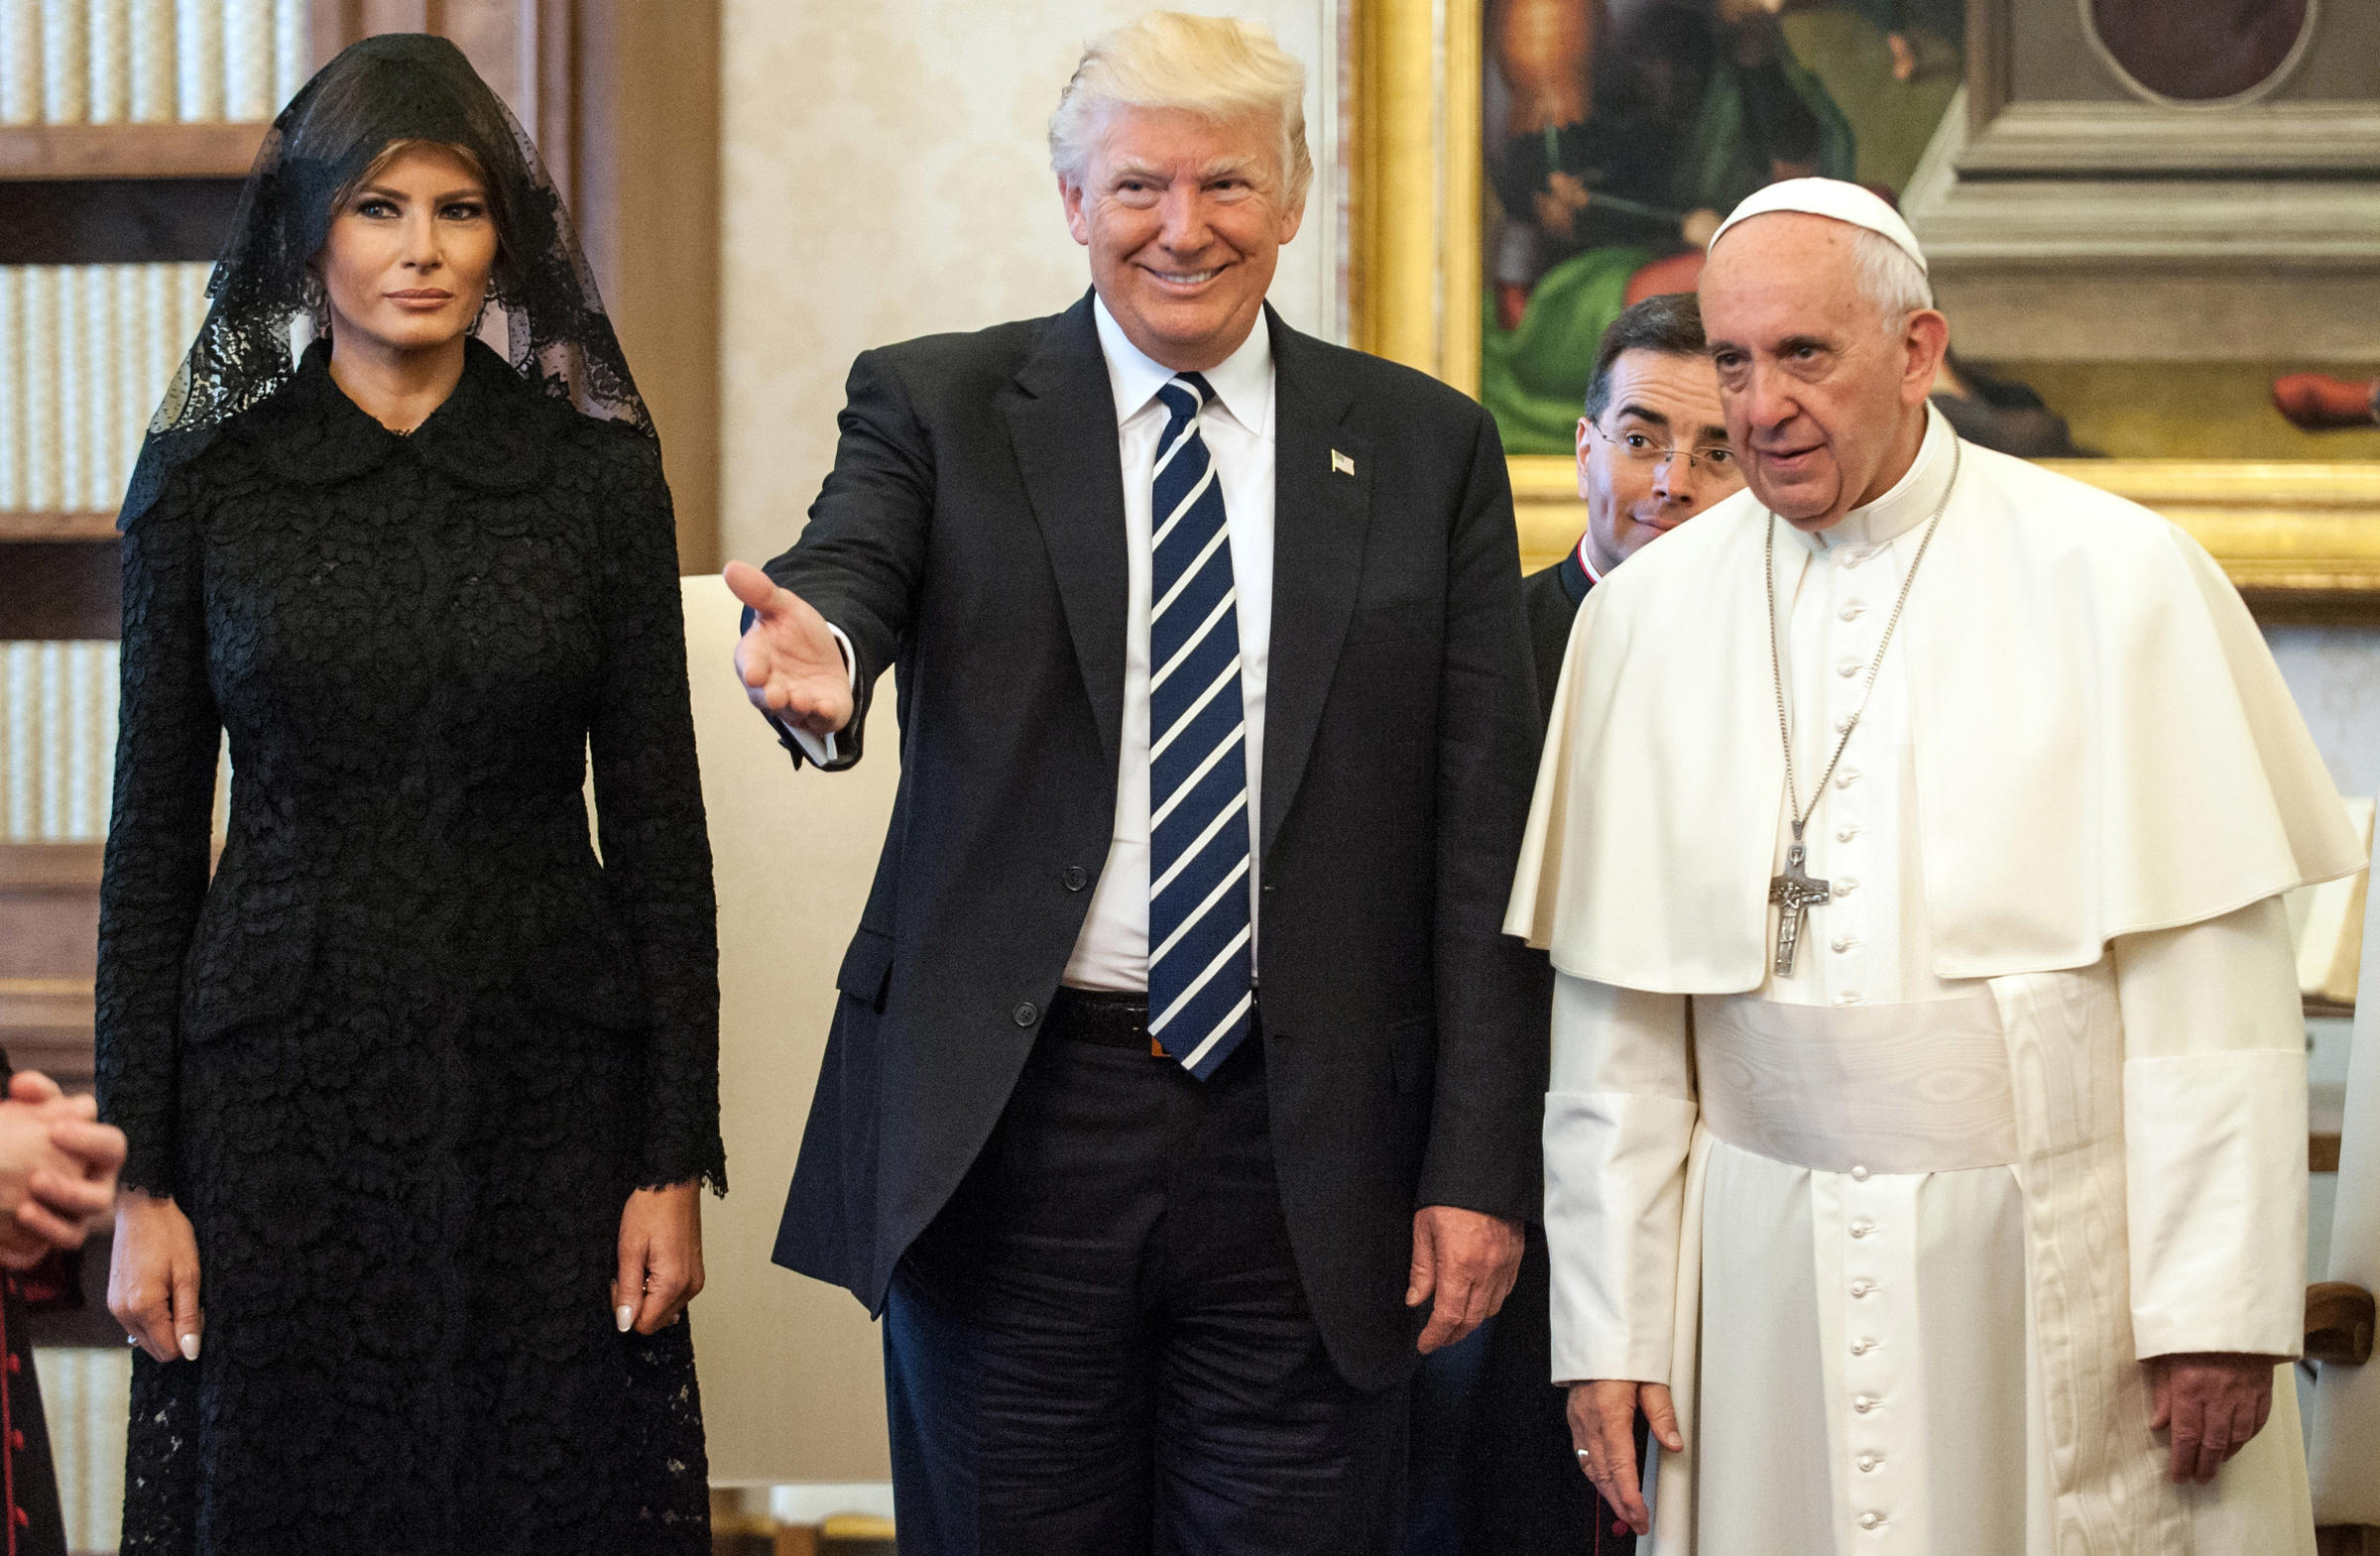 President Trump meets with Pope Francis at Vatican